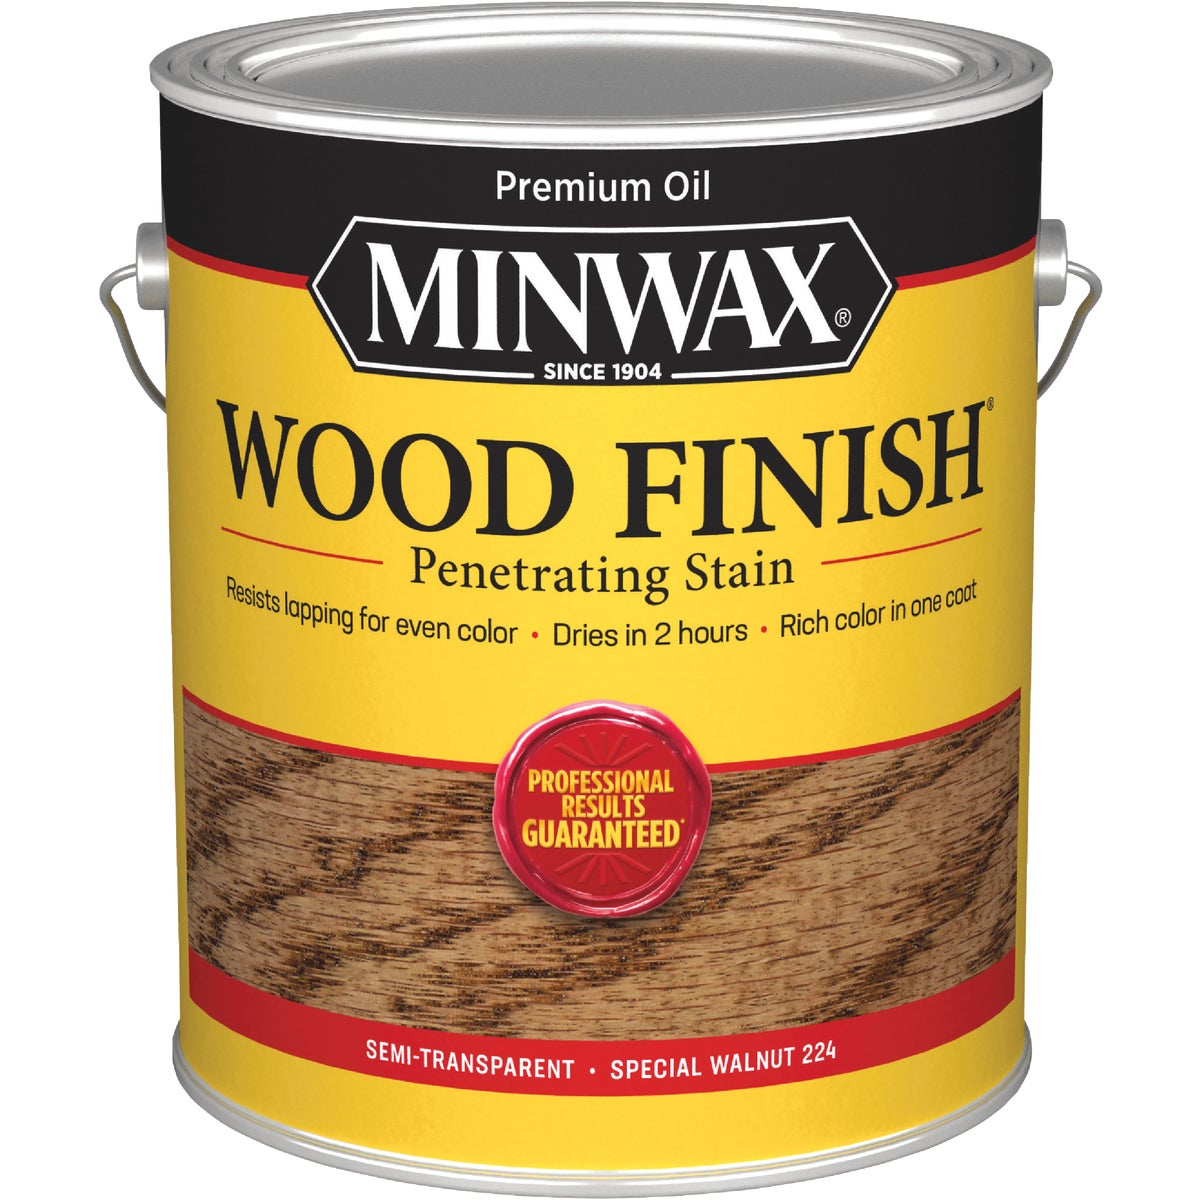 SPEC WALNUT WOOD STAIN - 71006 by Minwax Company